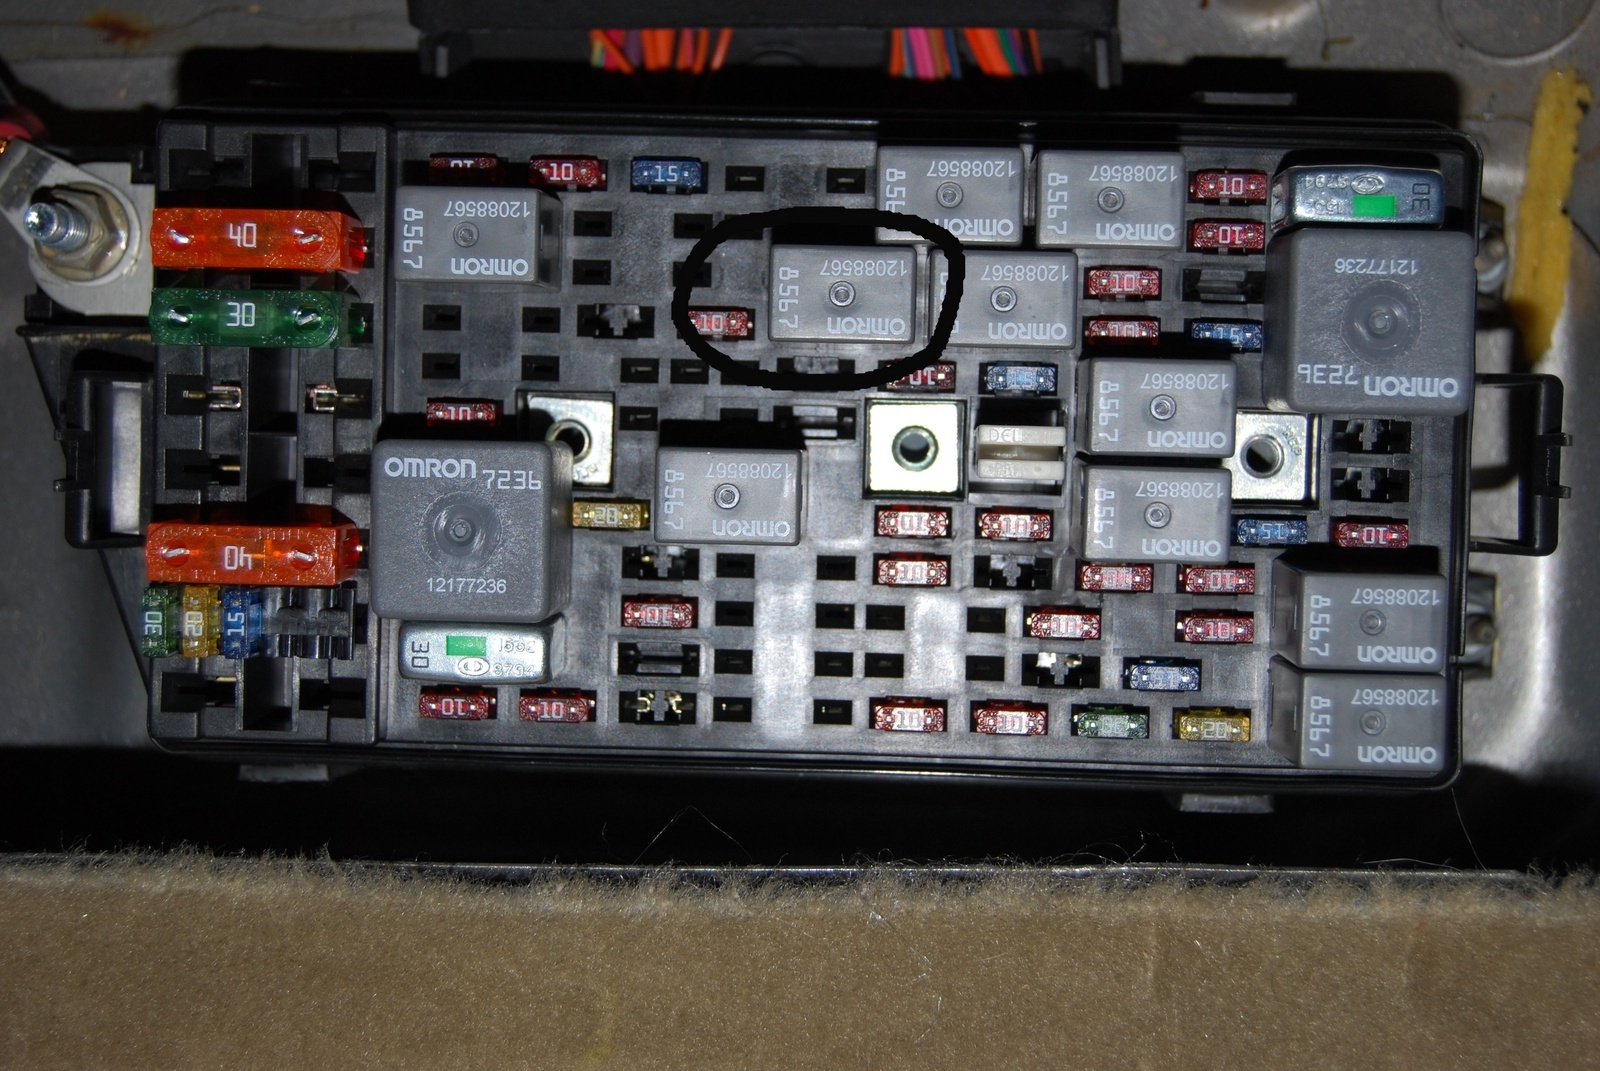 1998 Buick Regal Fuse Box Diagram Additionally 2000 Buick Lesabre Fuse